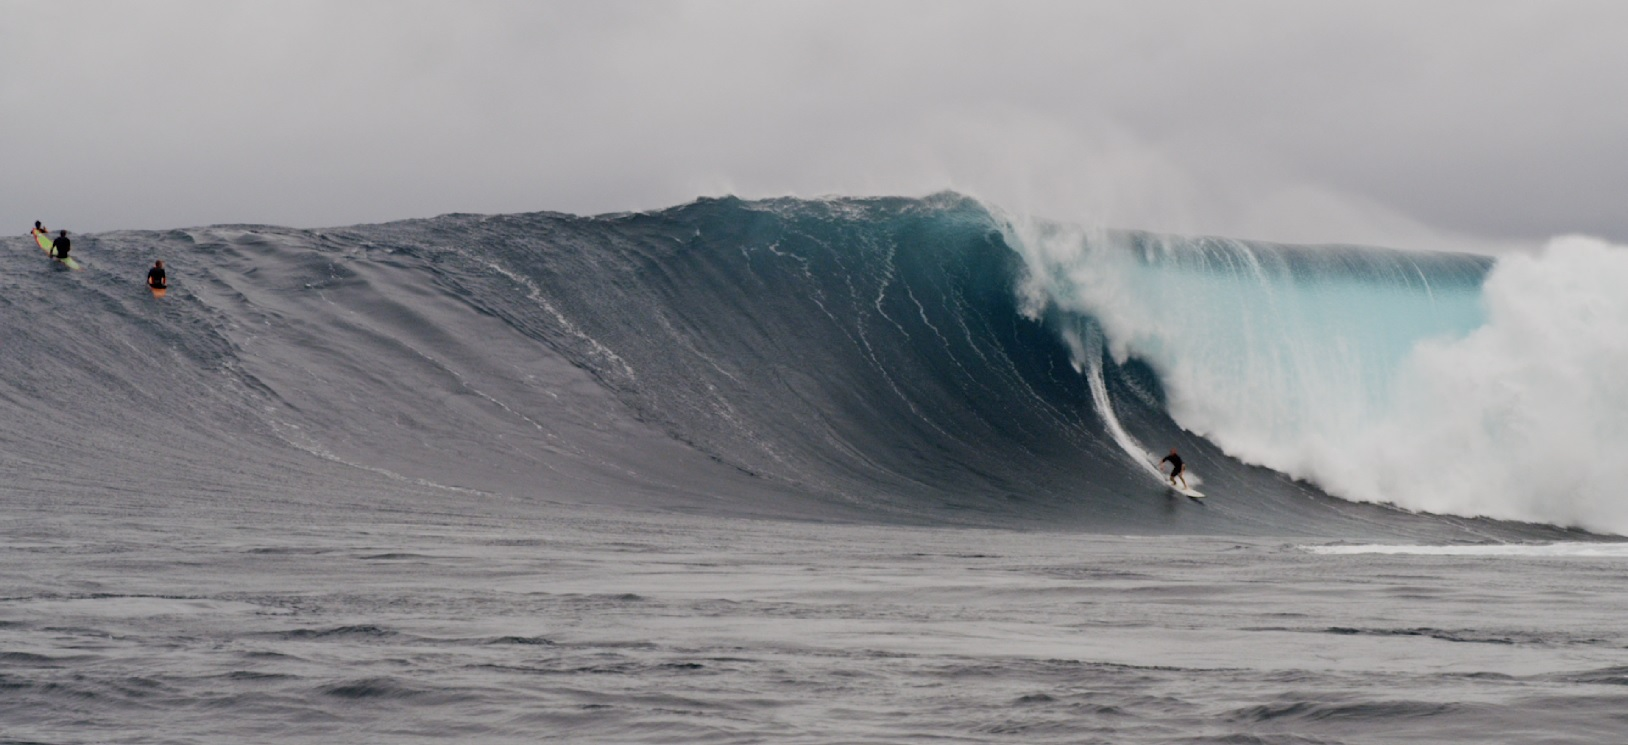 Nic Vaughan - Jaws - March 2, 2014 - Photo Larry Haynes